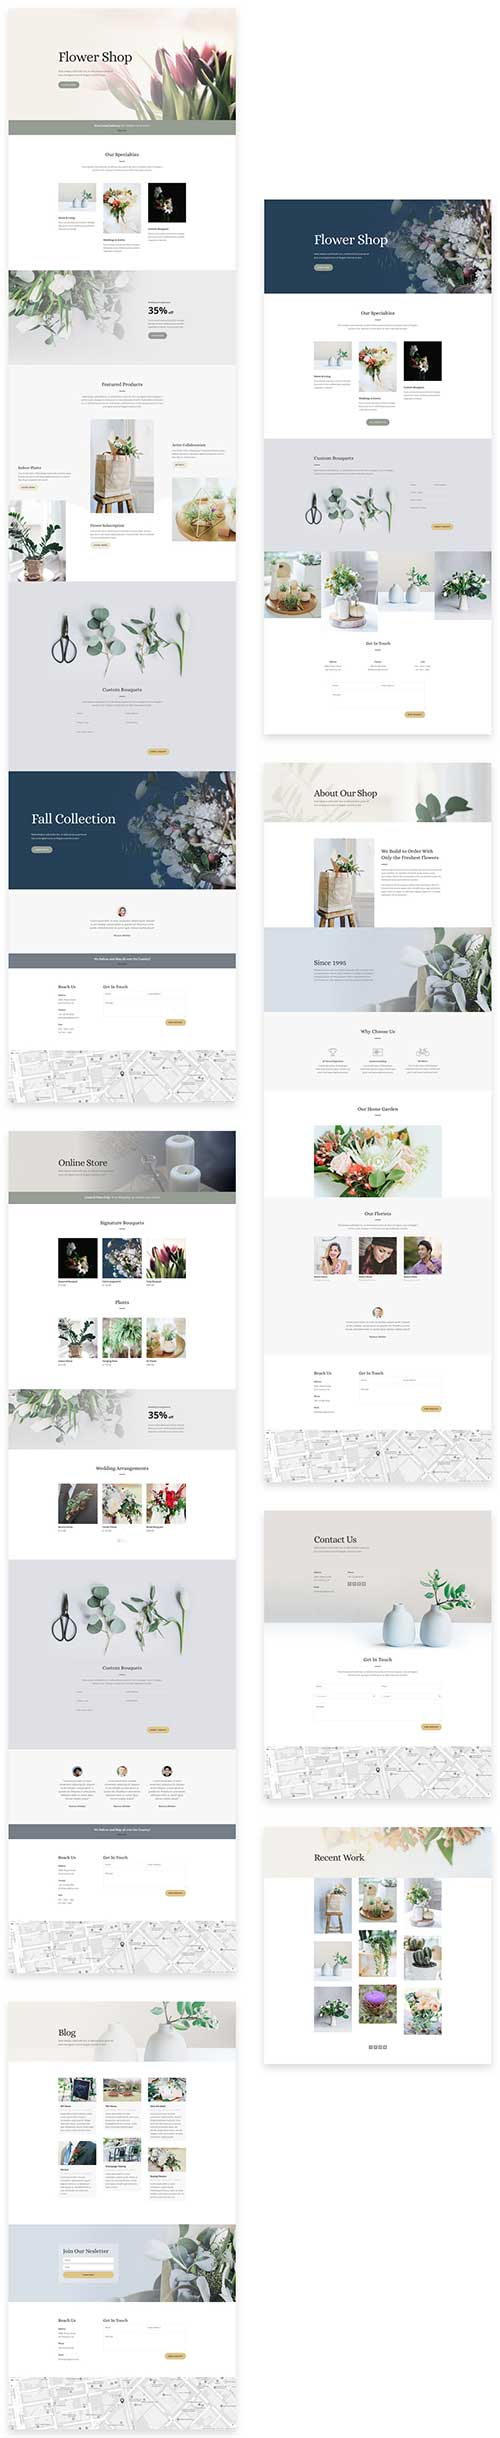 free Divi layout for florist shop